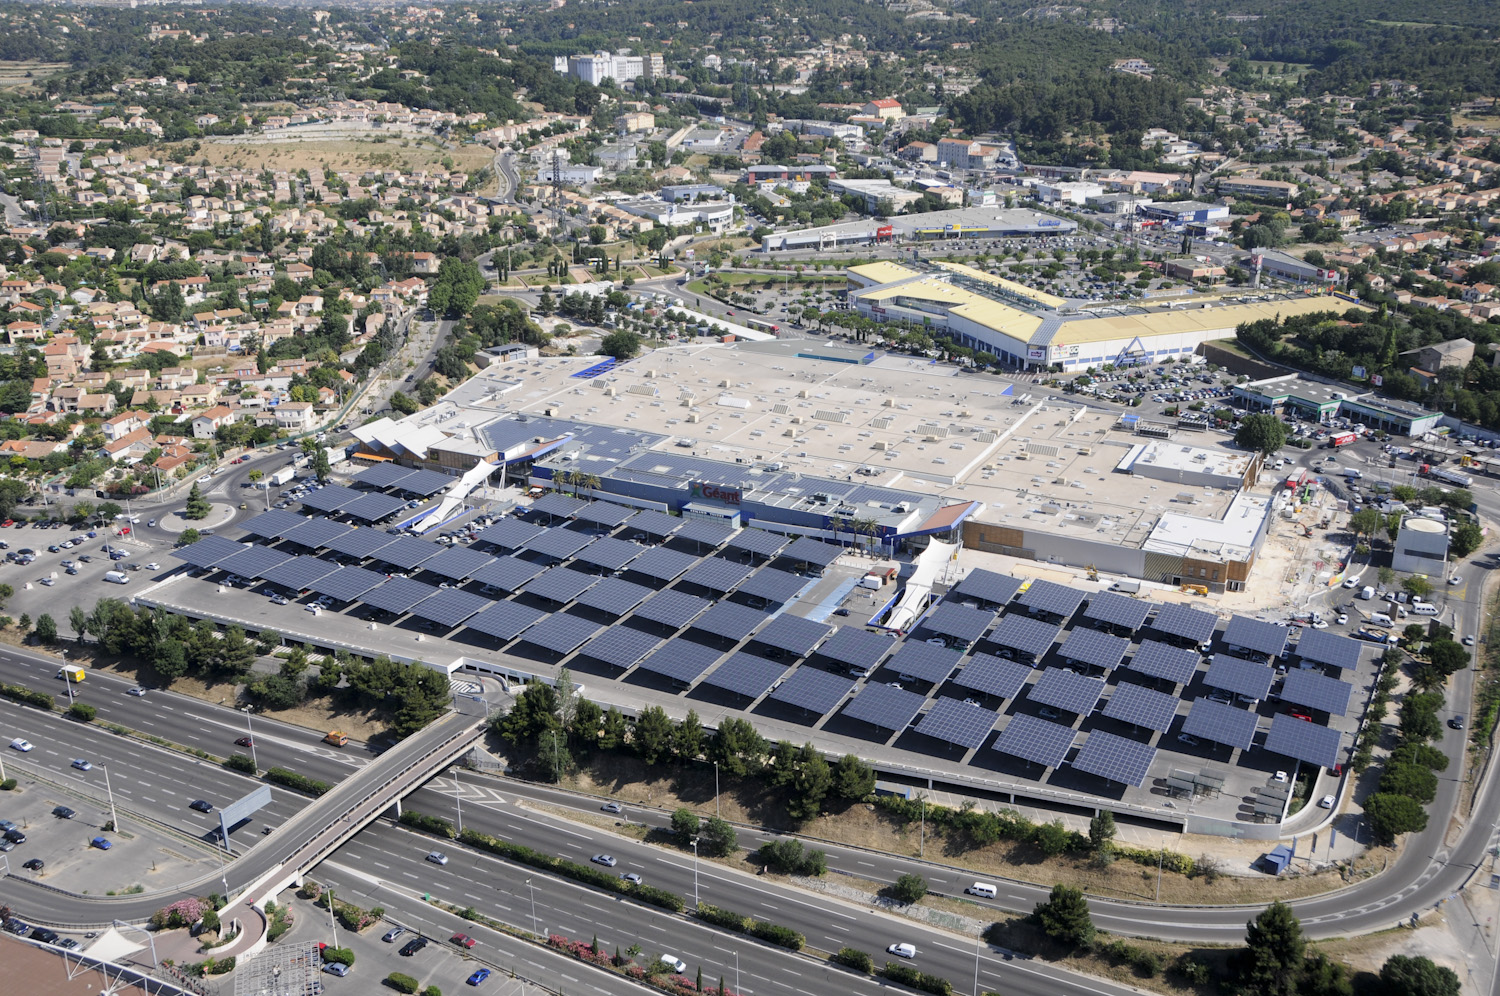 ombrières photovoltaîques marseille casino parking